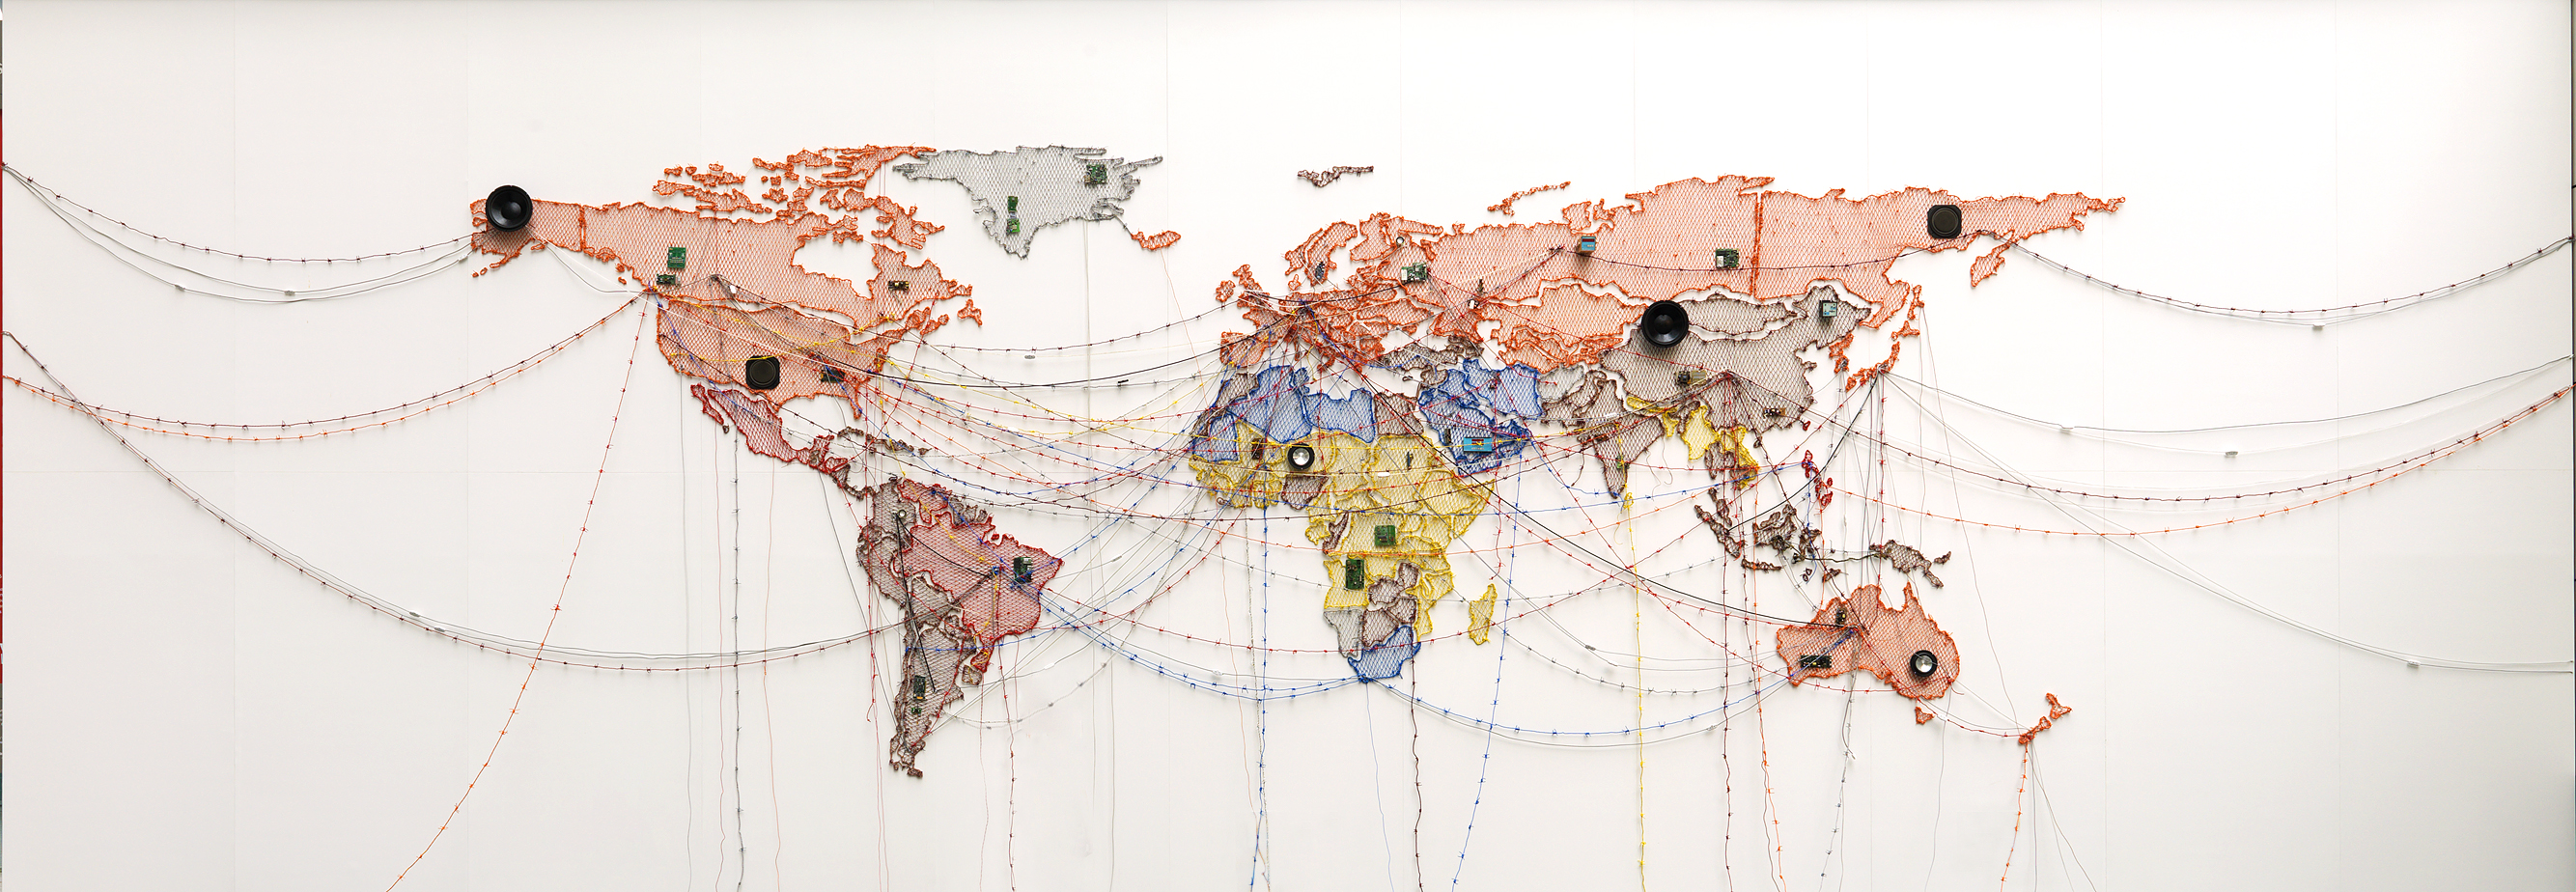 """Displaced,"" Woven Chronicle, Reena Kallat, 2015"